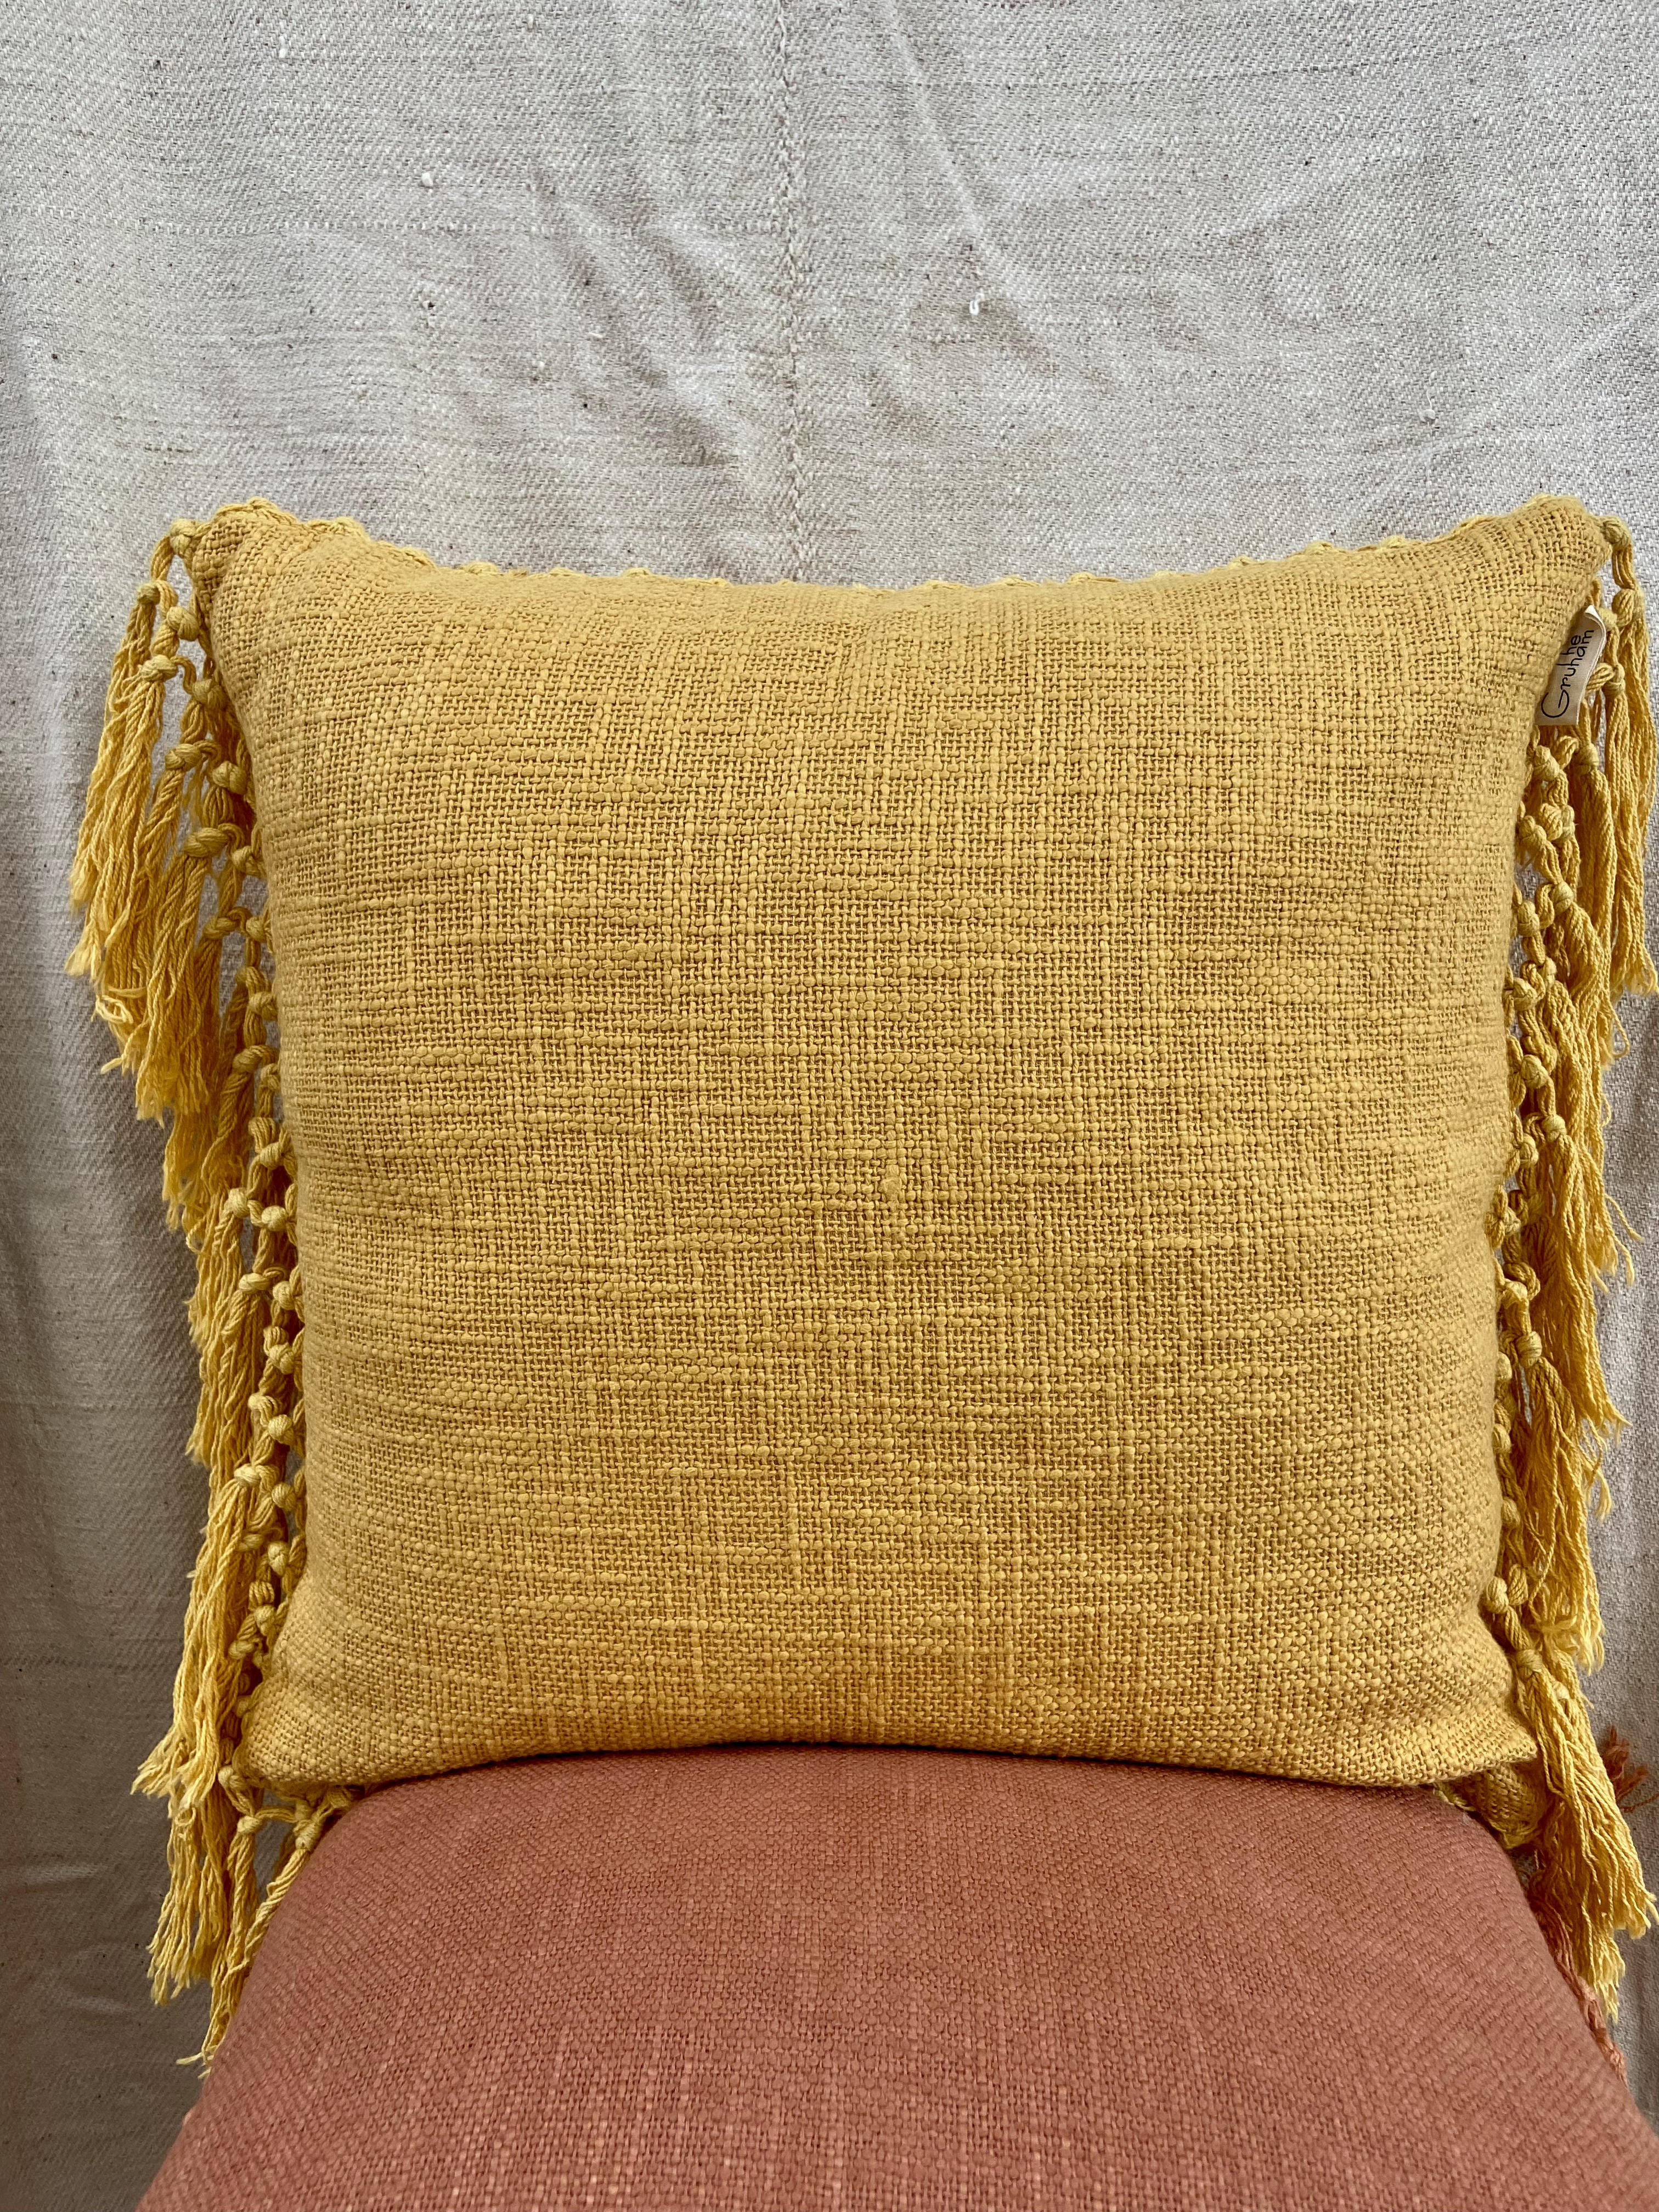 """A plain weave featuring beautiful natural slub with a refined yet raw look from its brushed finish. These beautiful fall colours will definitely add a pop to your space. """"All decorative pillow covers are sewn professionally with finished edges. All seams are over-locked to prevent fraying. However, due to difference in measuring methods, there will be a 1-2 cm size difference which is inevitable. """"YKK Invisible side zipper enclosures for easy removal and cleaning."""